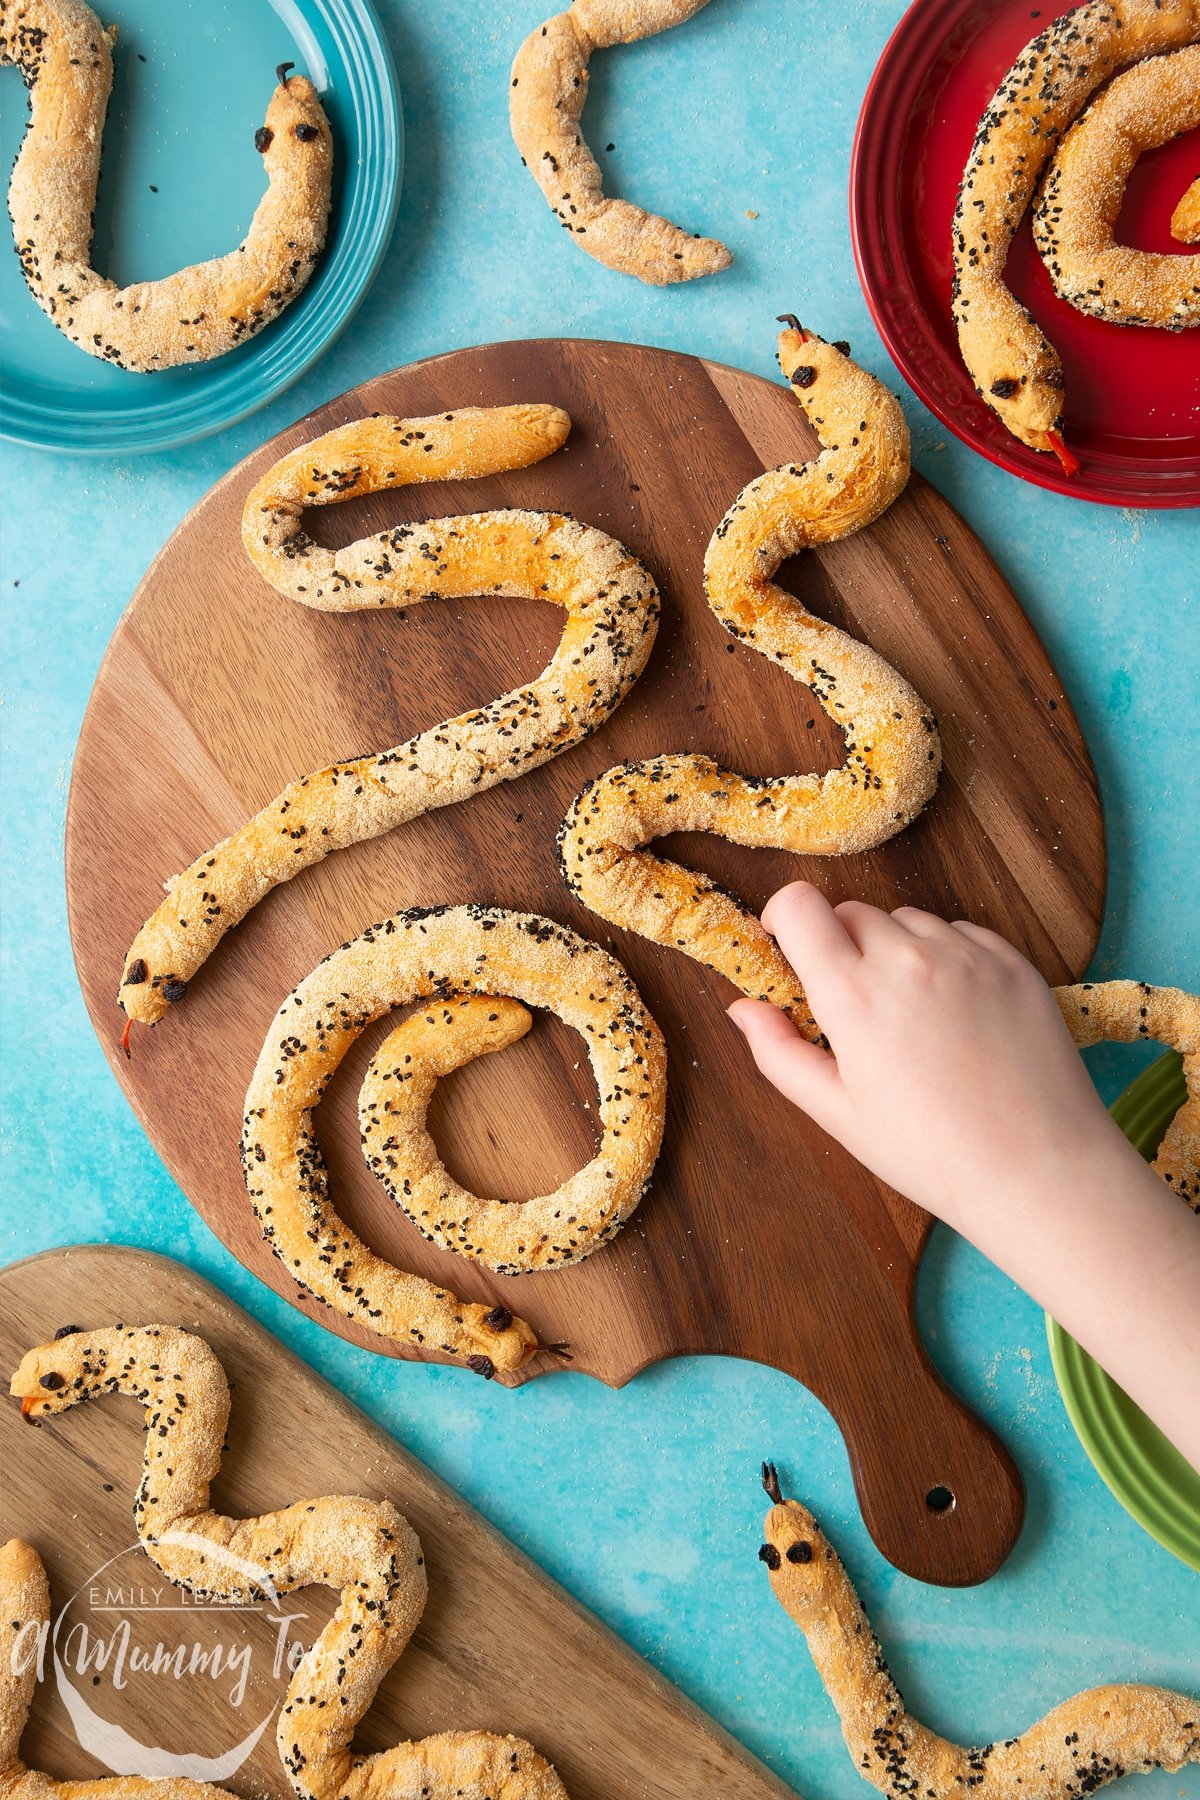 Bread snakes on a wooden board. More bread snakes are shown on coloured plates at the edges of the photo. A hand reaches to take a snake.